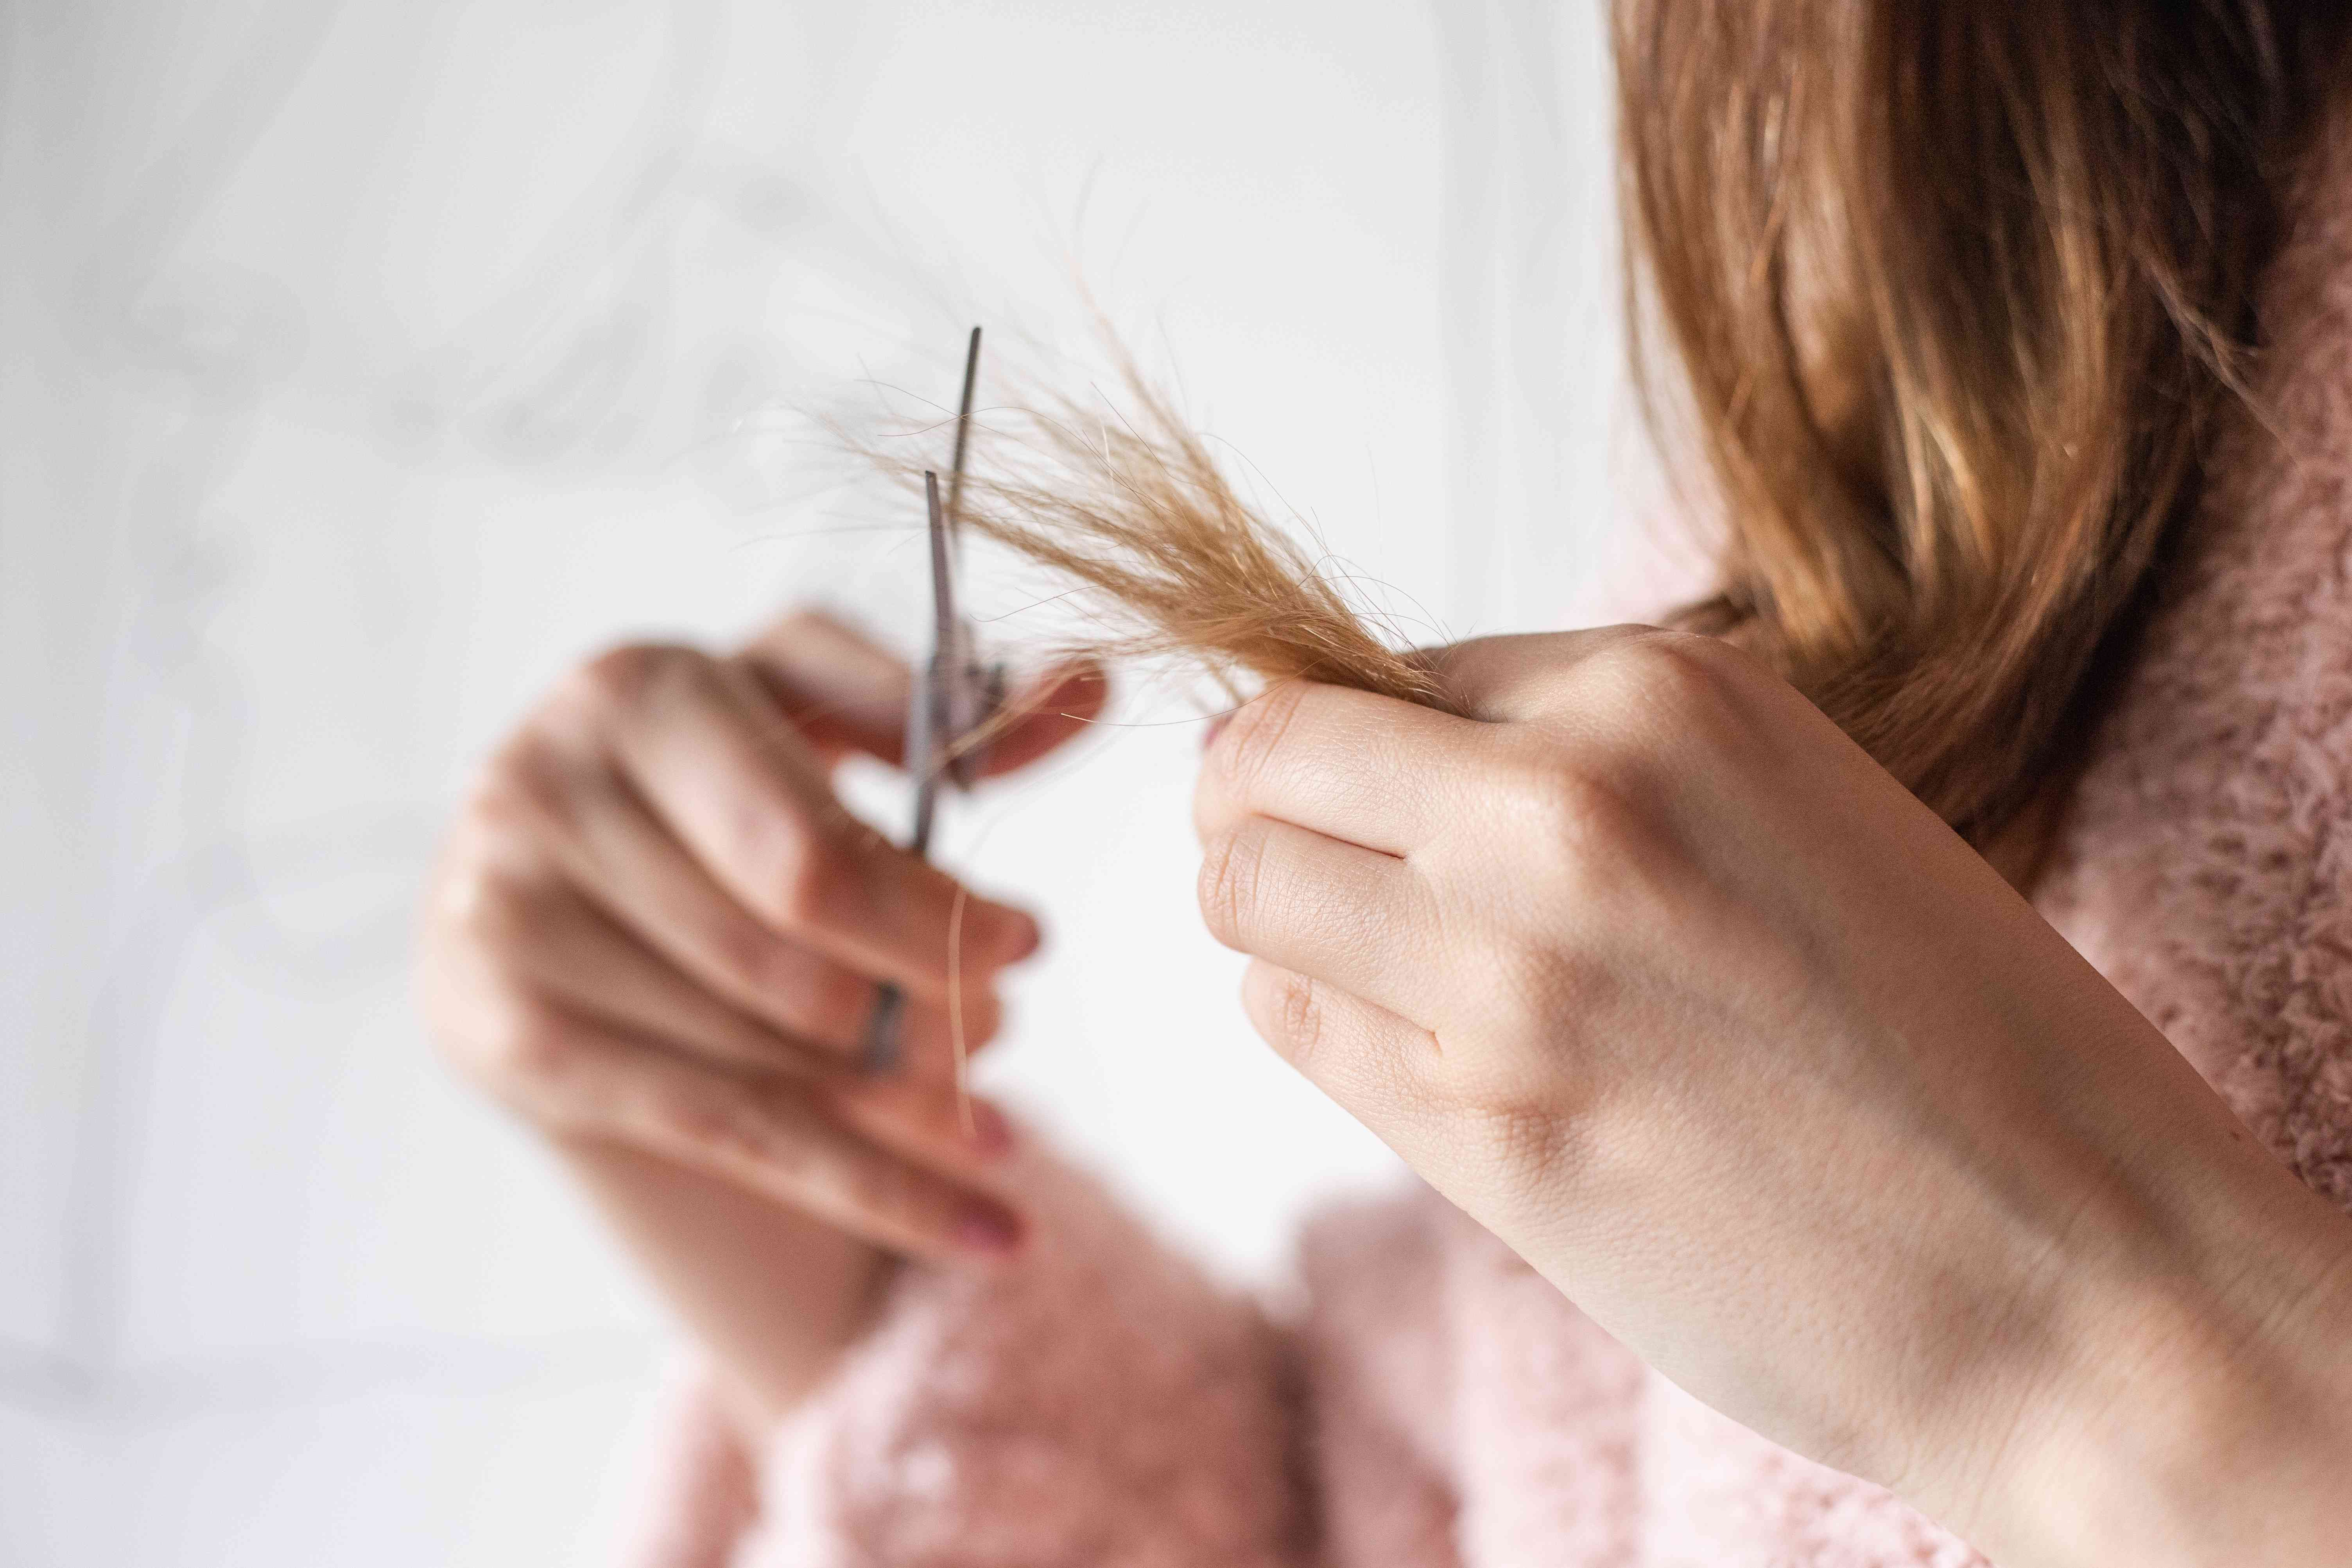 person in pink sweater holds ends of hair and trims with scissors in other hand